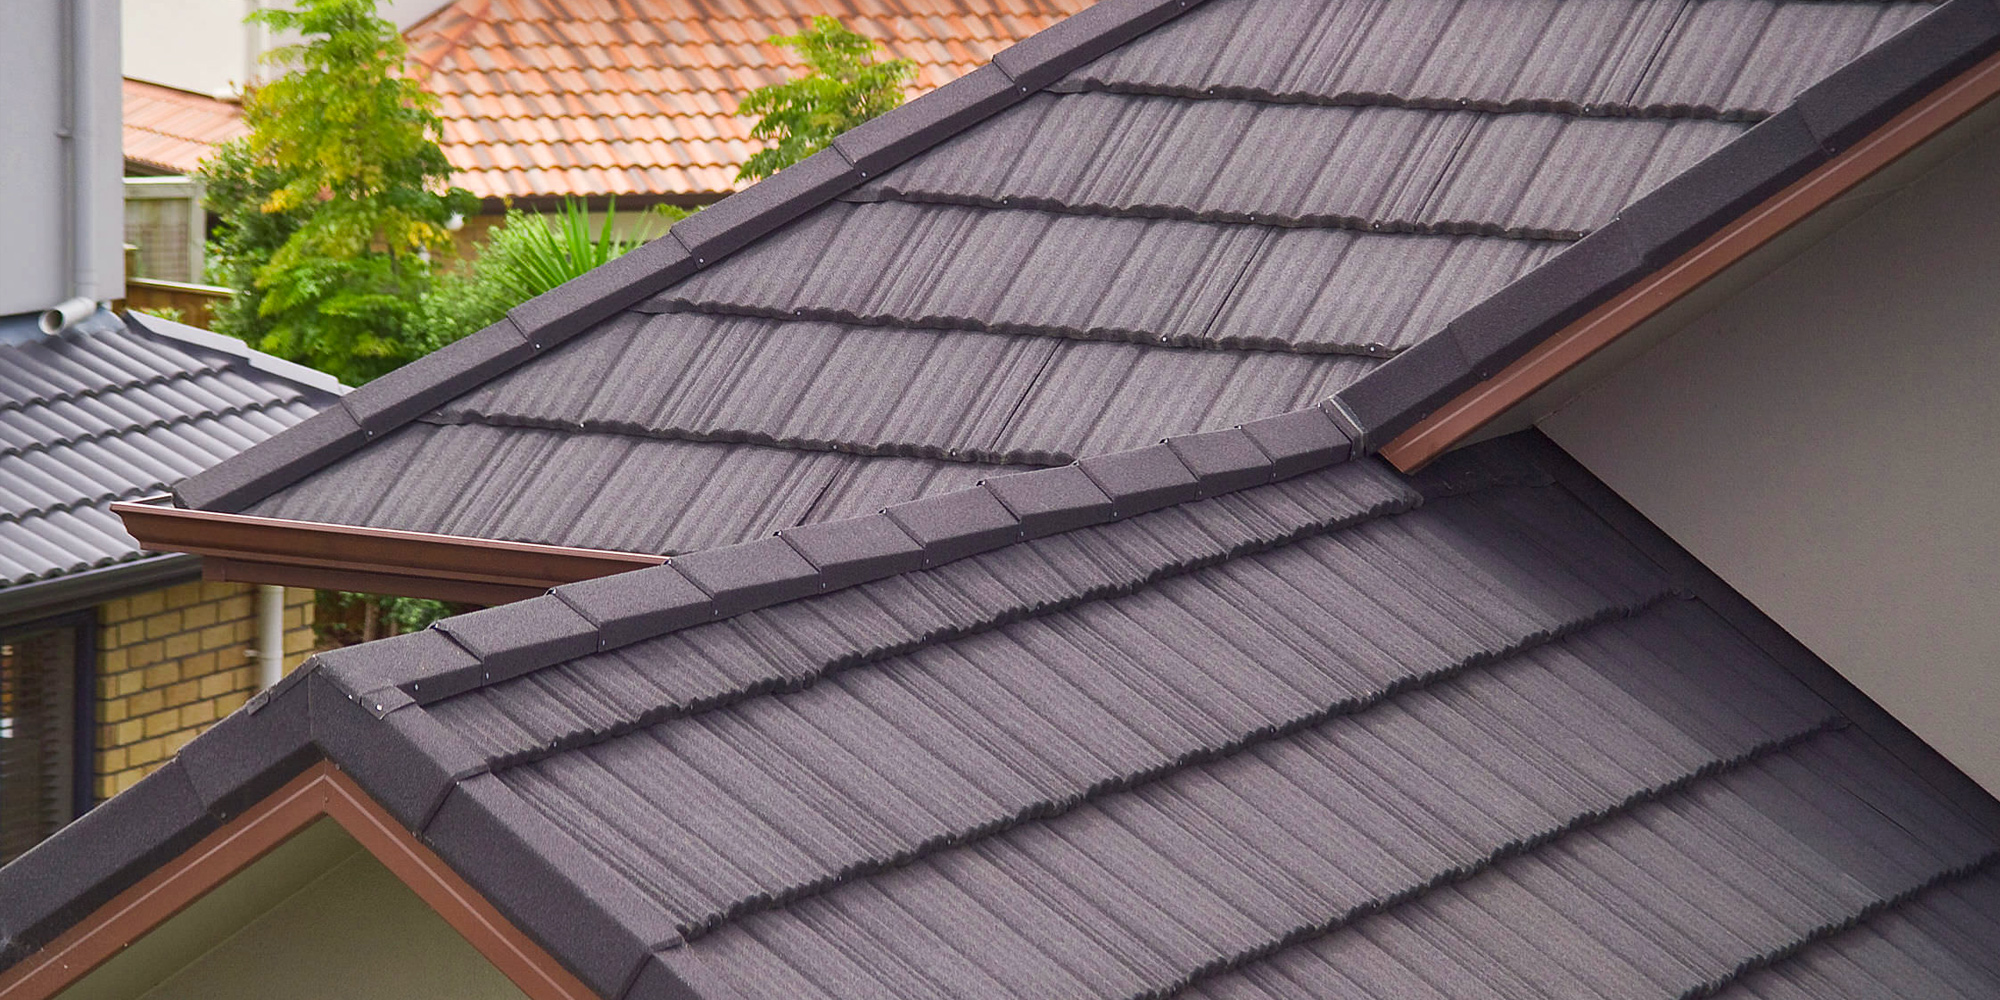 Choose Tile Roofing for Ultimate Durability   This concrete roof tile is built to stand up to the elements, exceed seismic load requirements, and lower your energy costs.   Contact Us